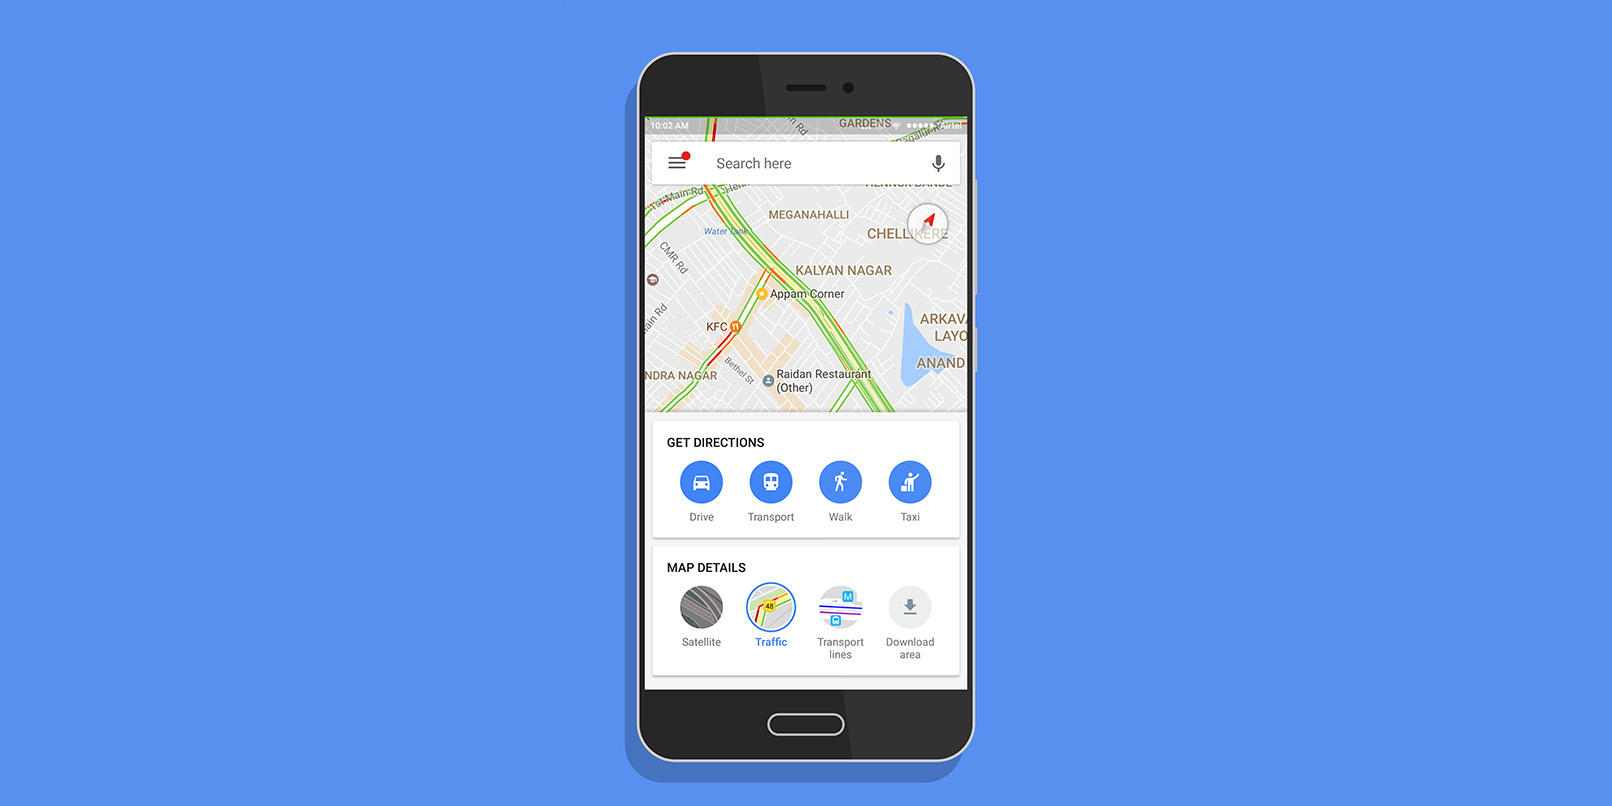 Google Maps gets a custom home screen for easier navigation ... on google map texas a&m, google mobile pelengator, google satellite home view, luxury mobile, google map of malaysia, google mspd, google mapz, google map of alberta, sygic mobile, hotmail mobile, yelp mobile, google map of bc, google maqps, bing maps mobile, google map of vancouver, google earth street view, google bruxelles map, google search mapquest, google map street address, google mapsmap,